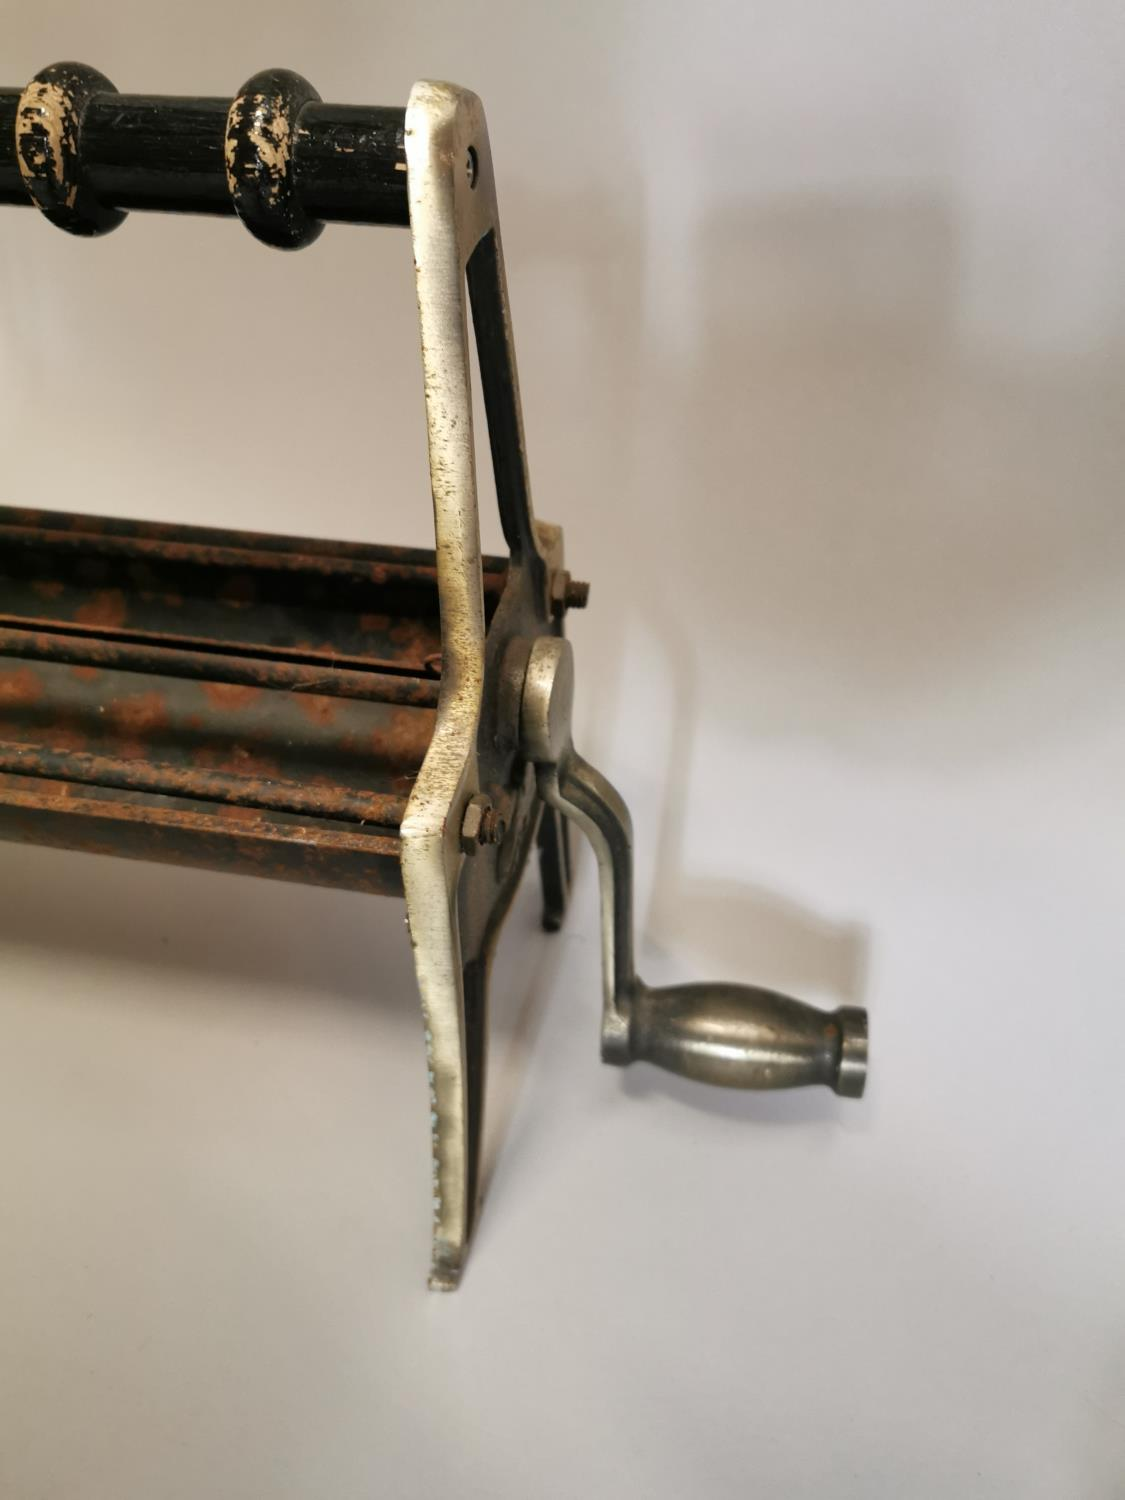 Early 20th. C. brass and metal paper roll holder. - Image 3 of 3